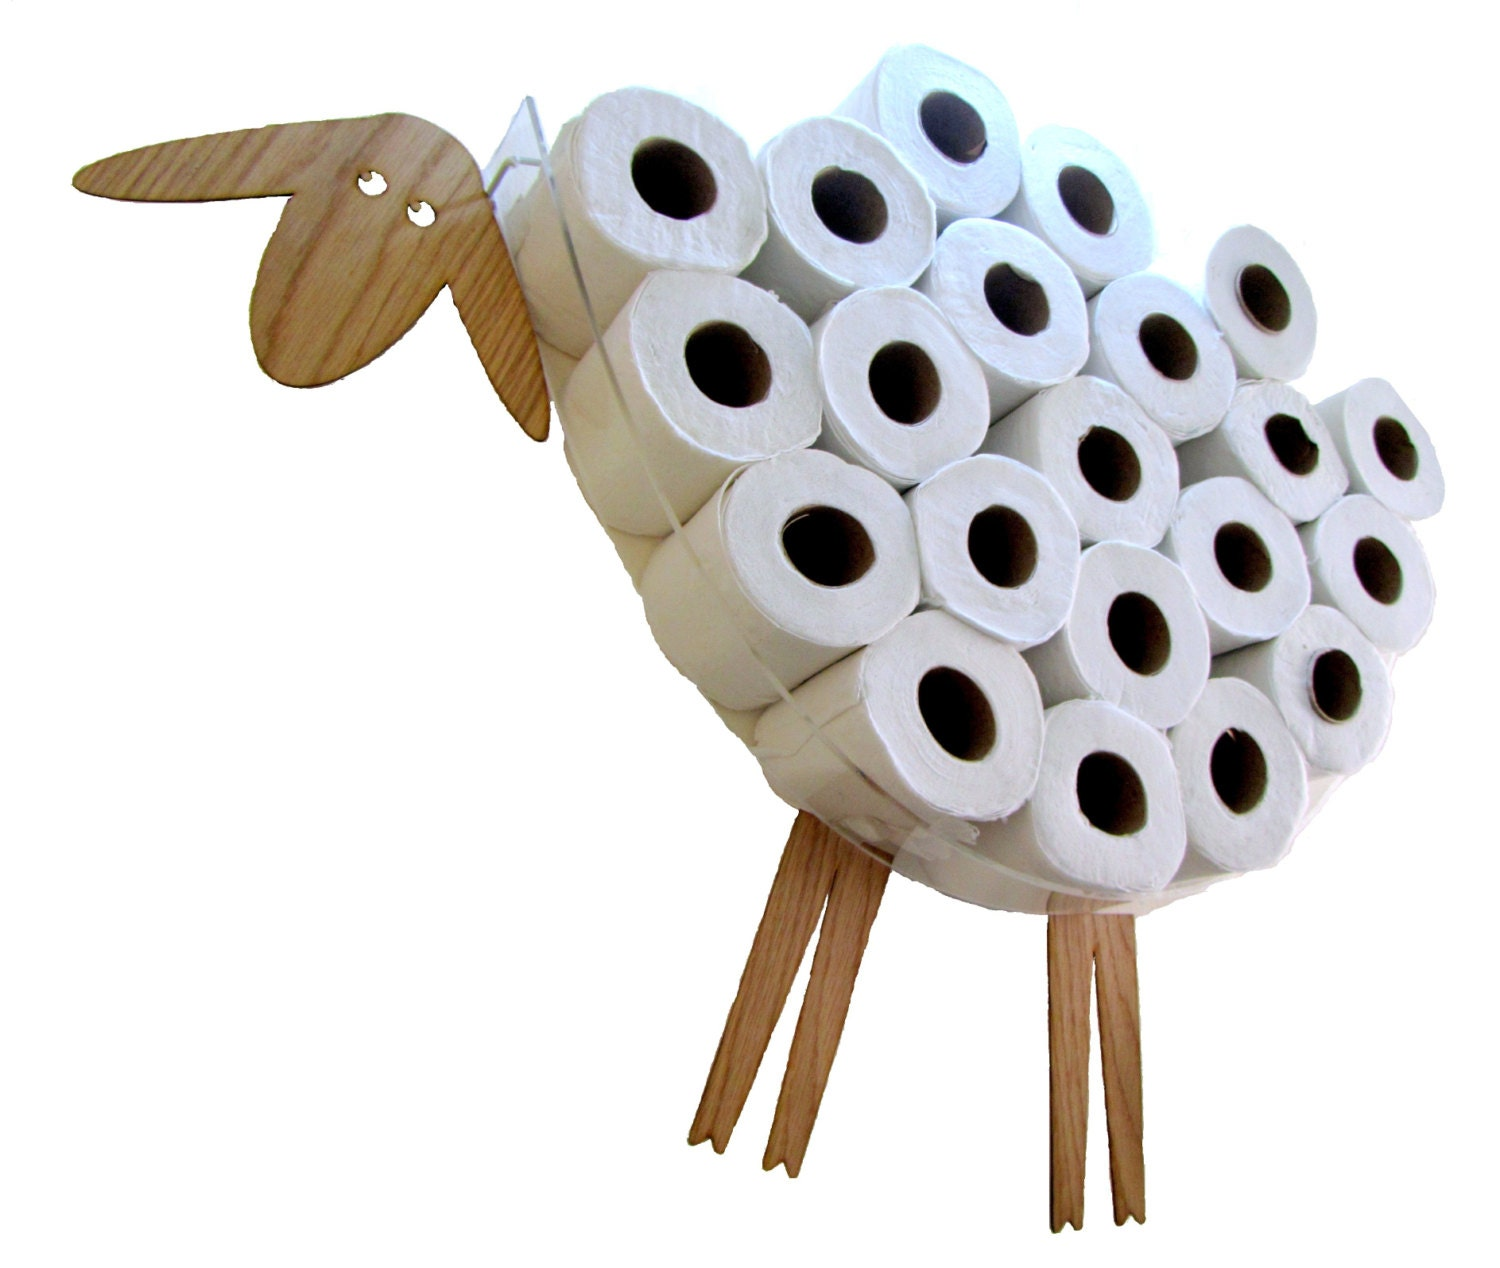 Sheep shelf a wall shelf for storing toilet paper rolls - Fabriquer porte papier toilette ...